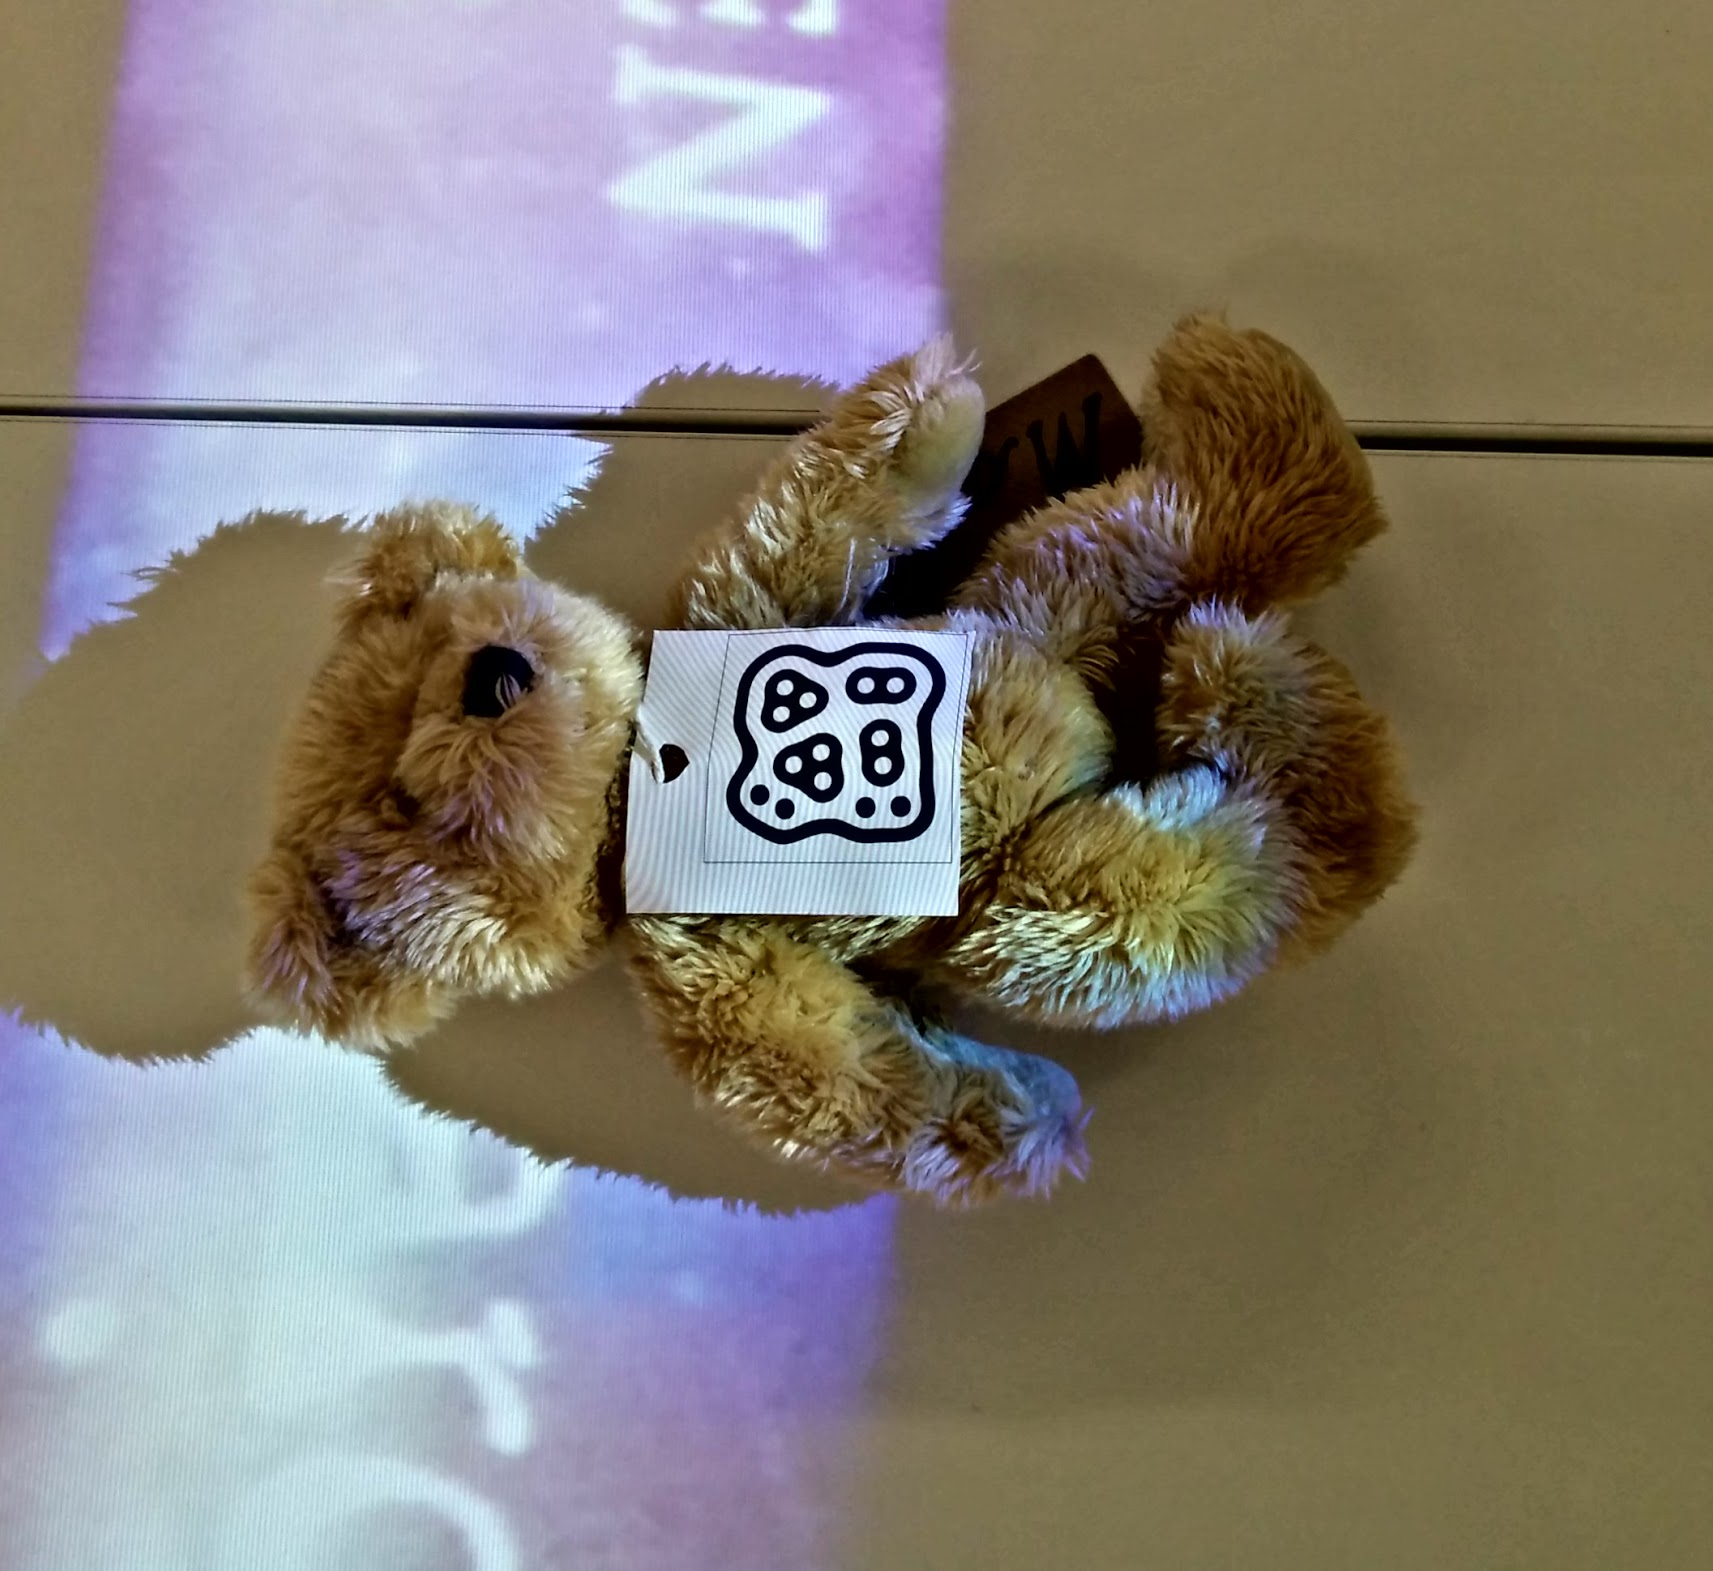 'Mo', the Mass Observation Archive mascot, volunteers to pilot the fiducial tracker.